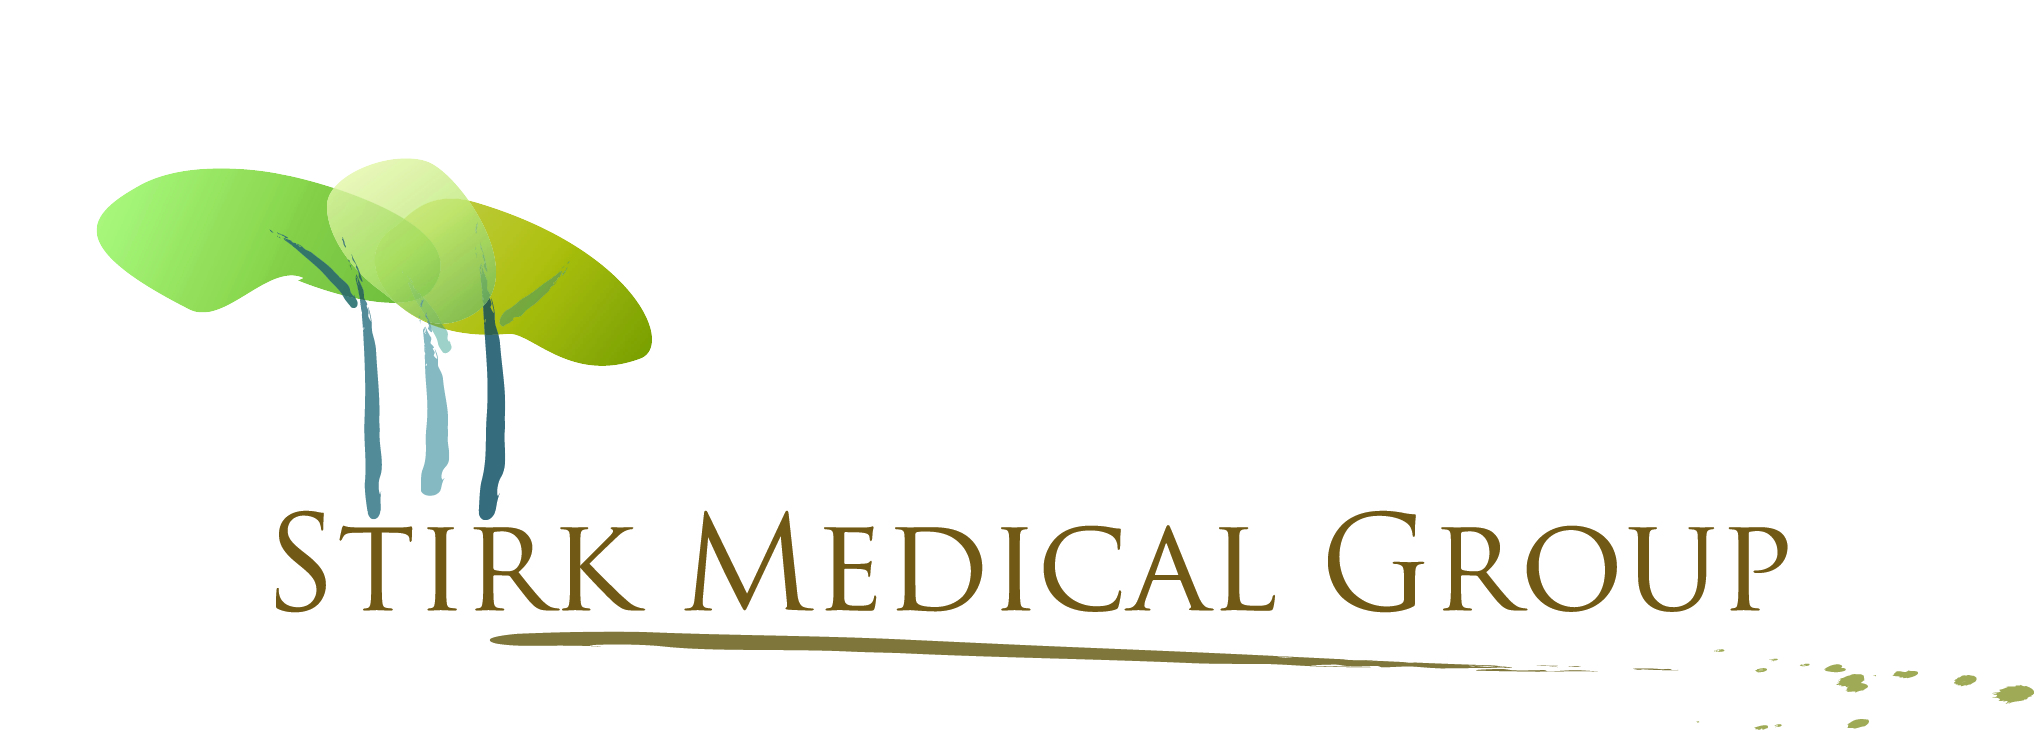 Stirk Medical Group